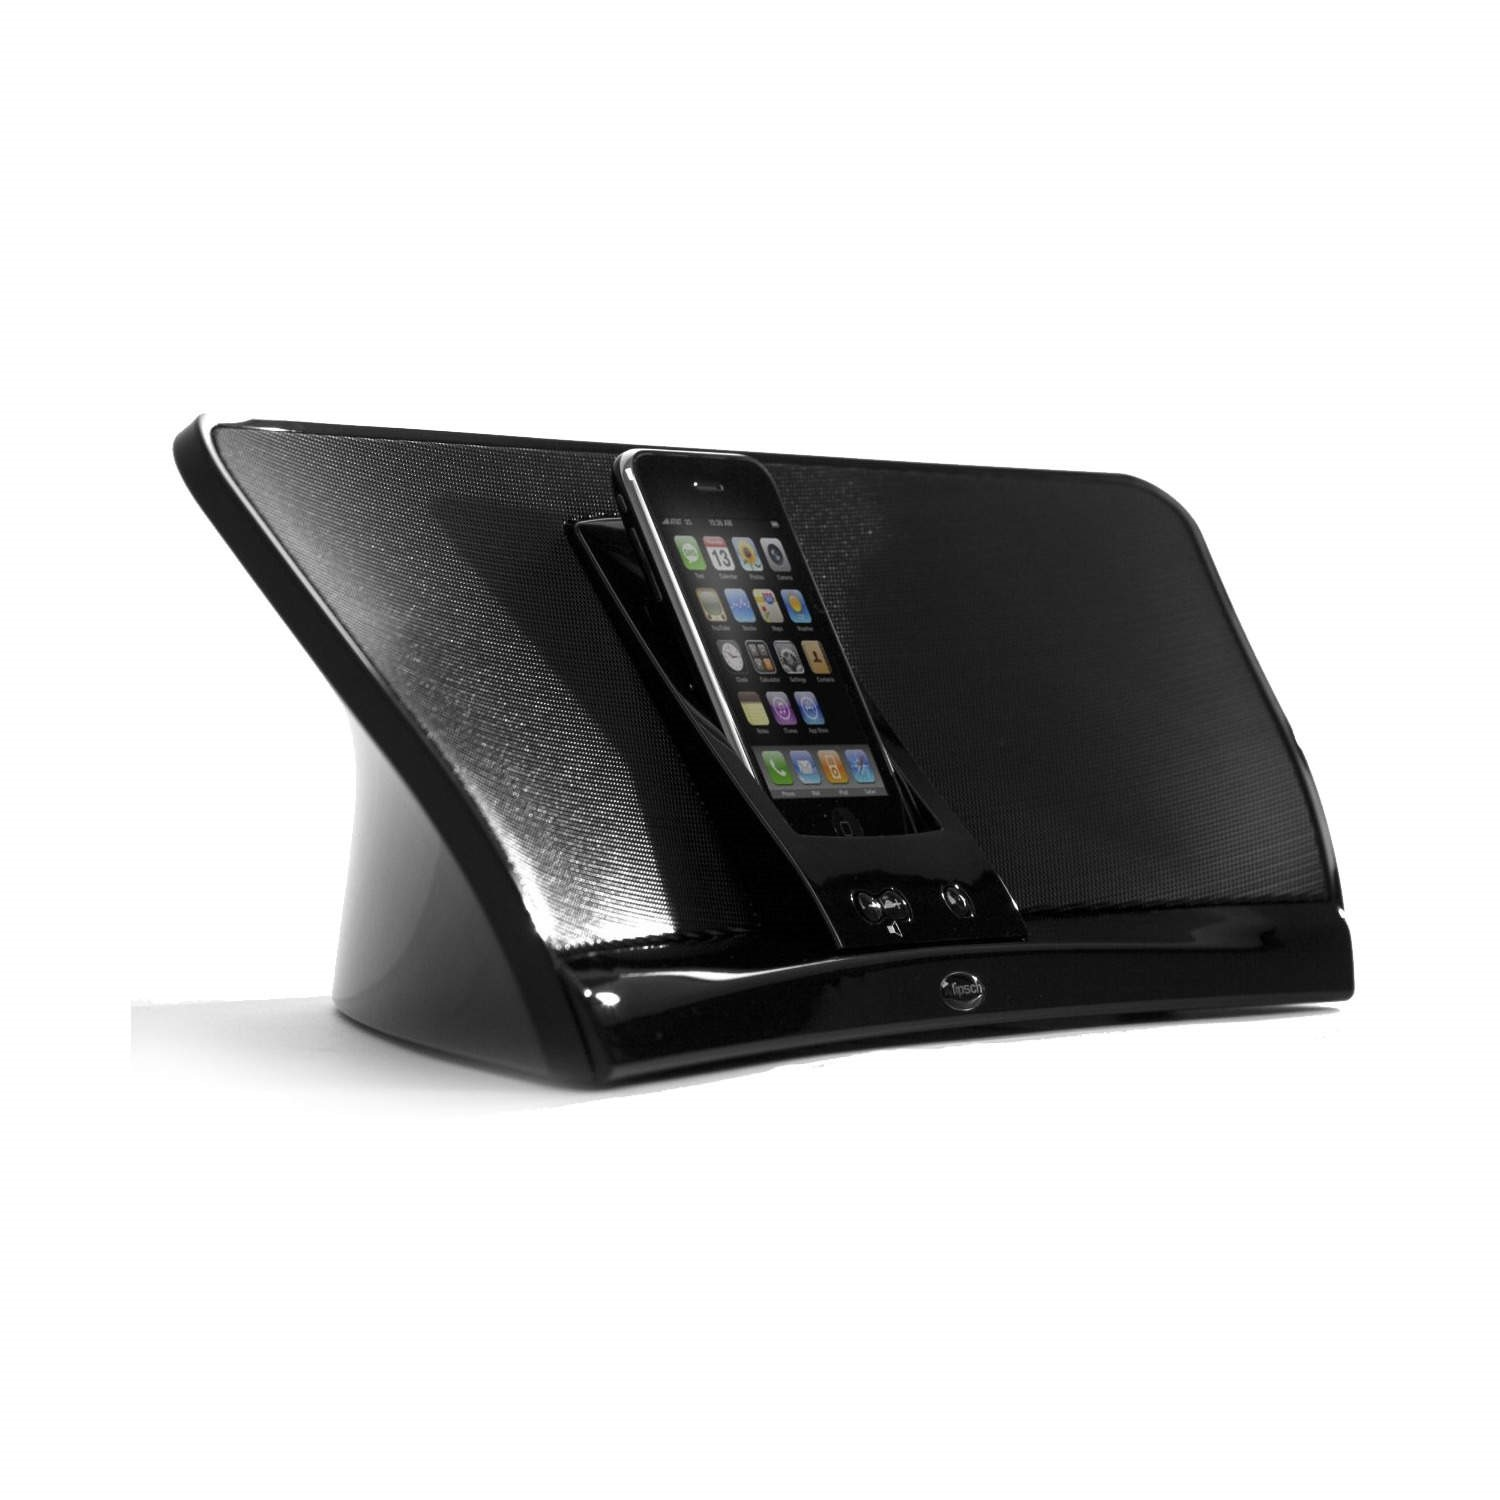 Klipsch Igroove Hg Ipod Speaker Dock Laptops Direct